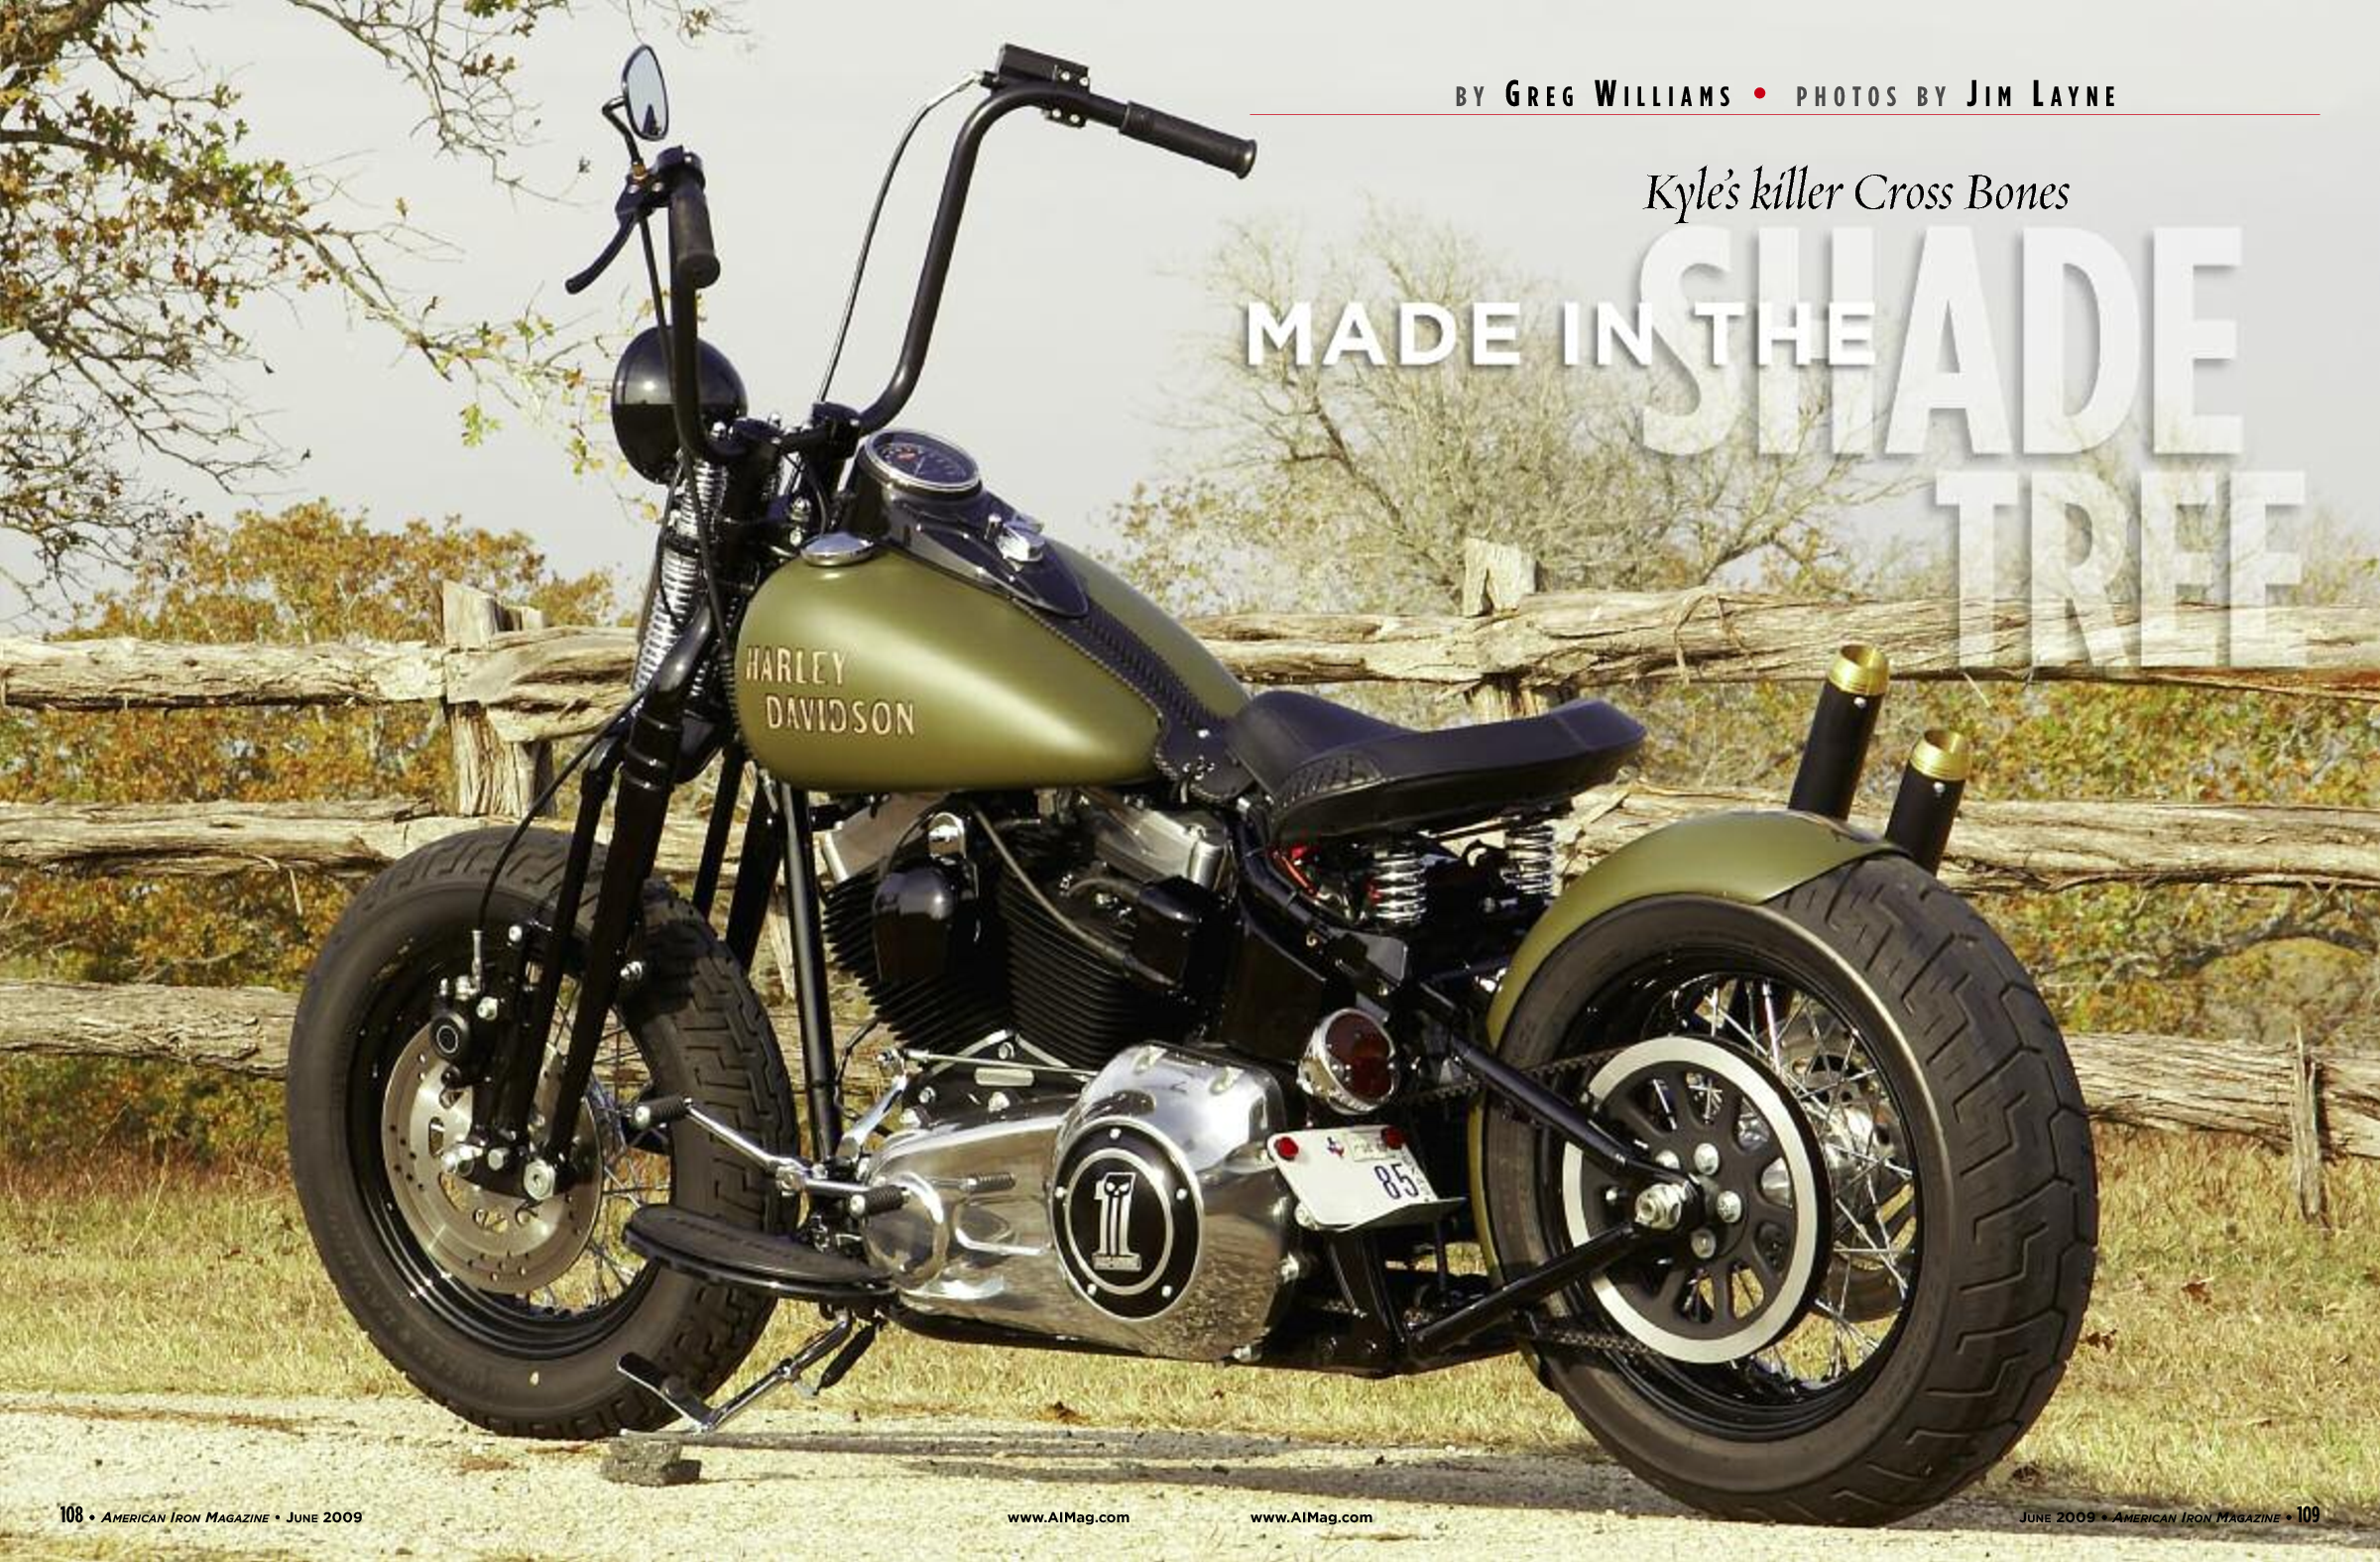 Are Harley Davidson Motorcycles Made In America